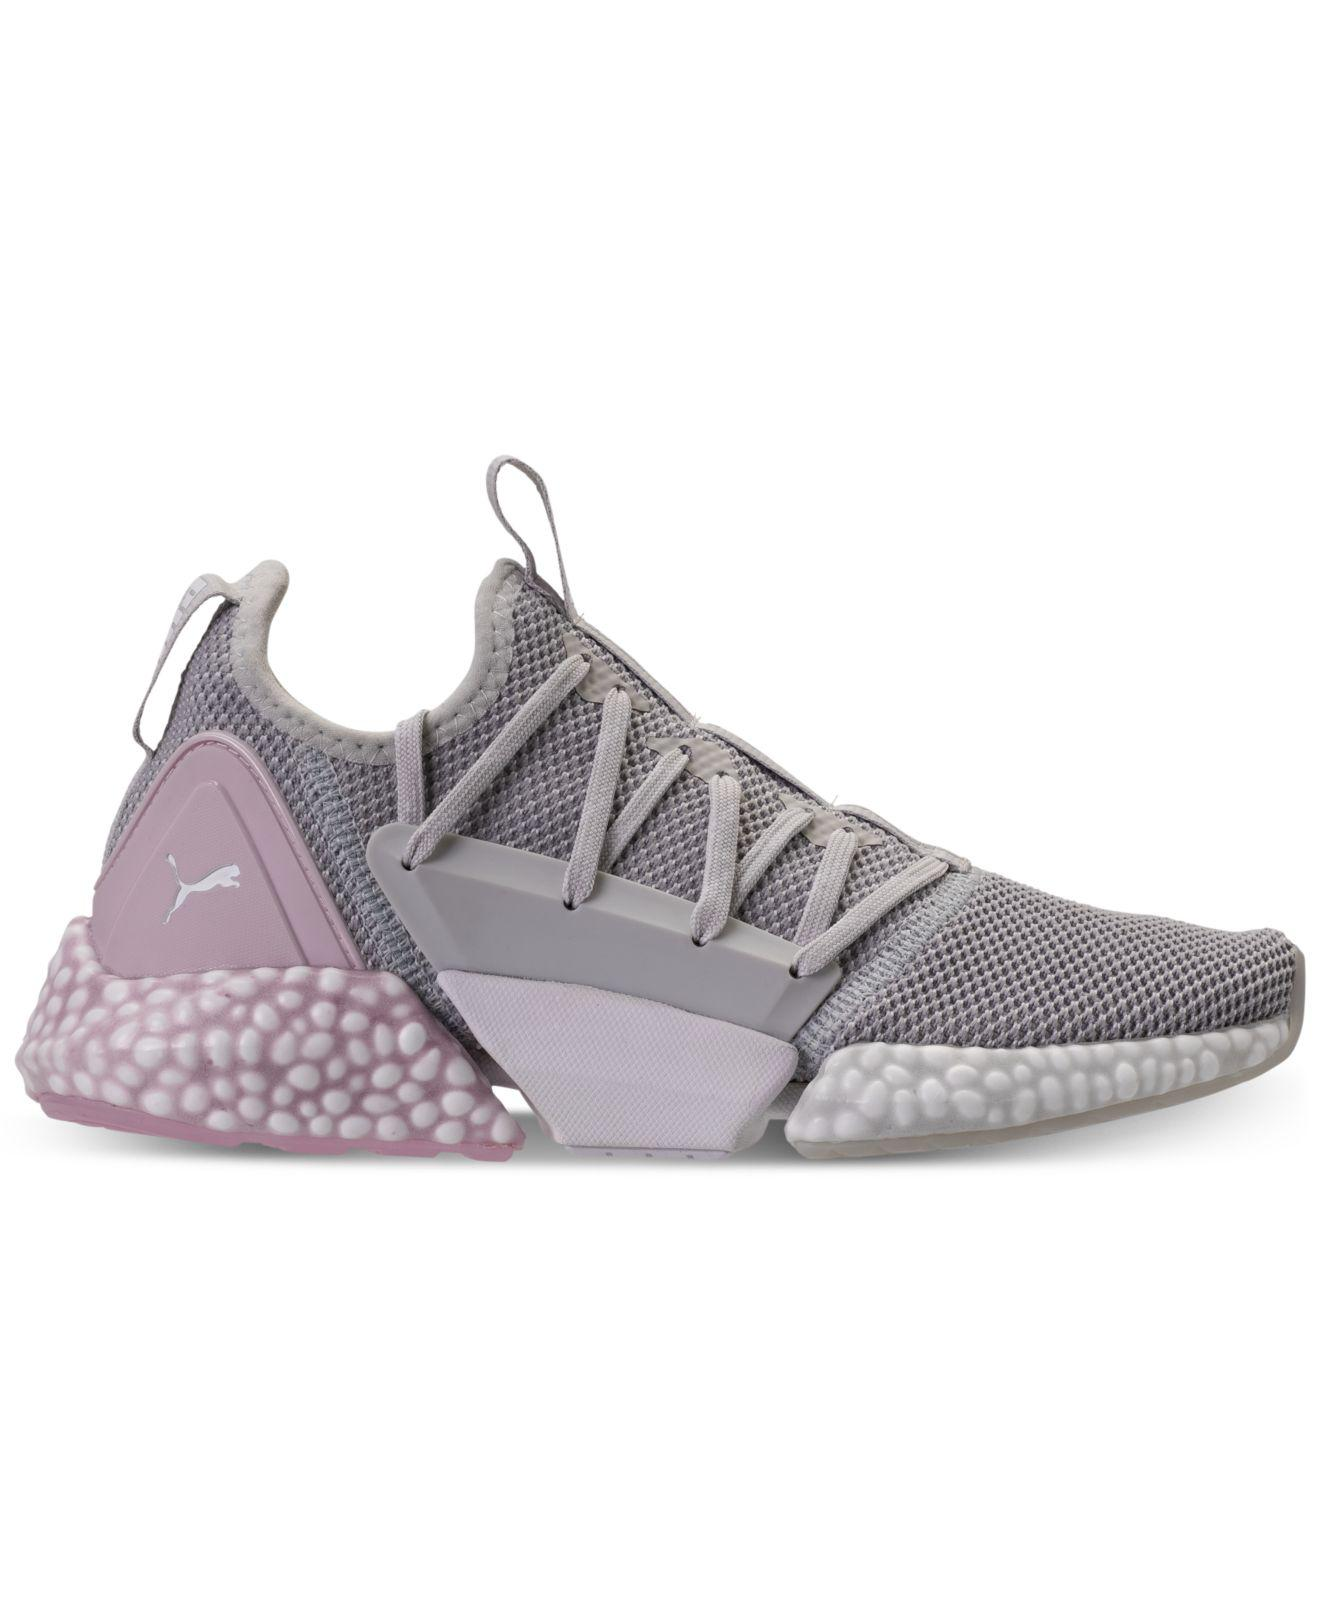 59e58cfbf222 ... fast 3448f 365b7 Lyst - Puma Hybrid Rocket Runner Casual Sneakers From  Finish Line in Gray ...